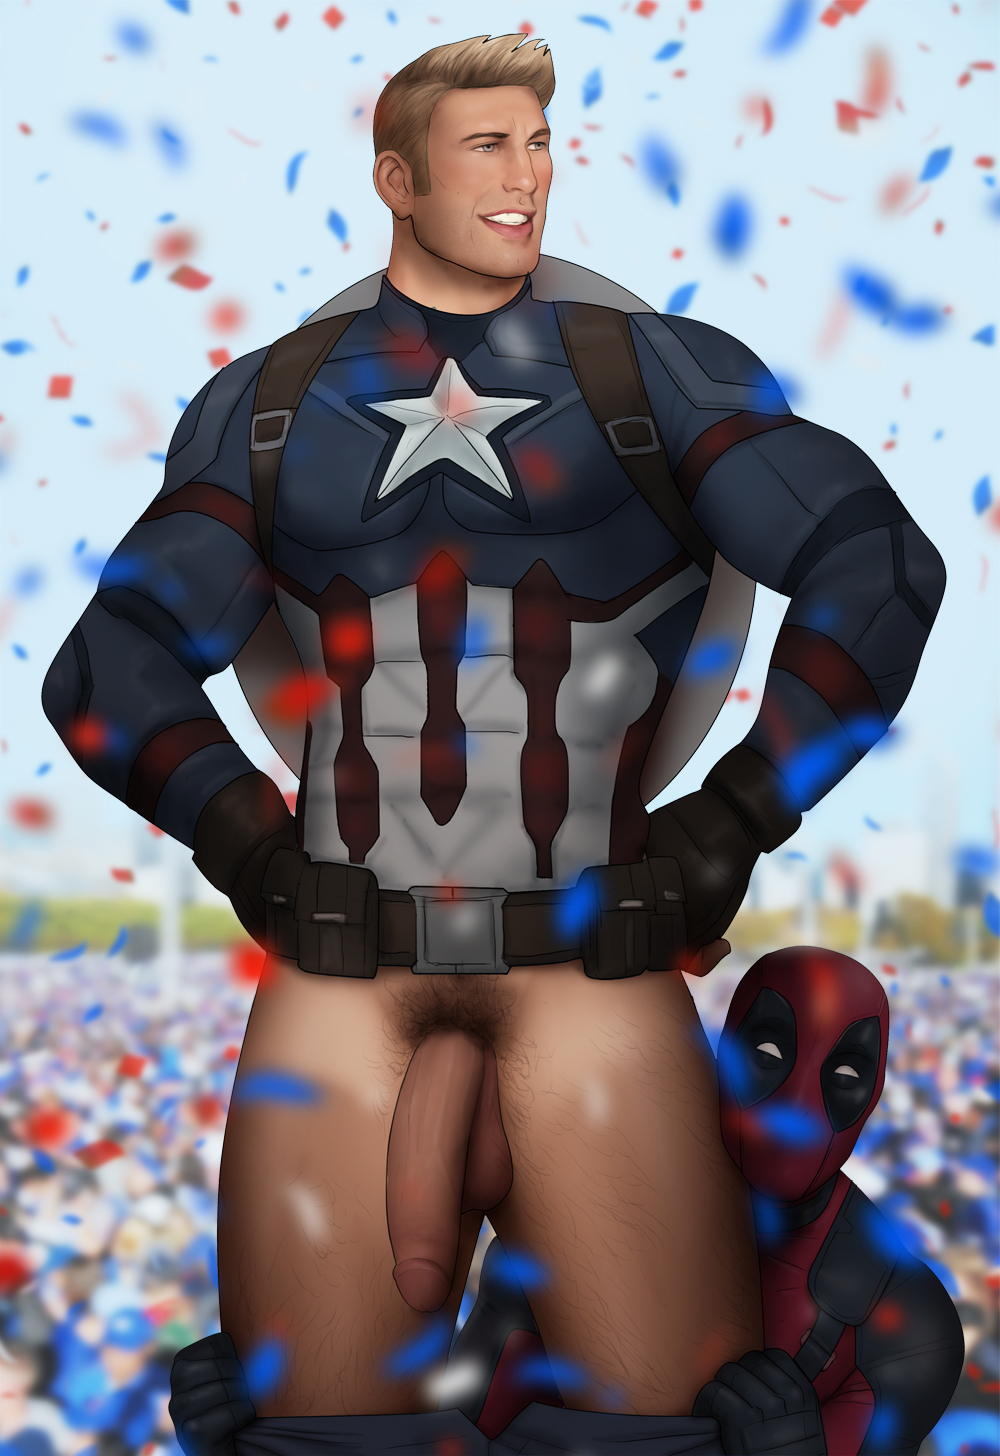 Chris evans nude full frontal cock exposed